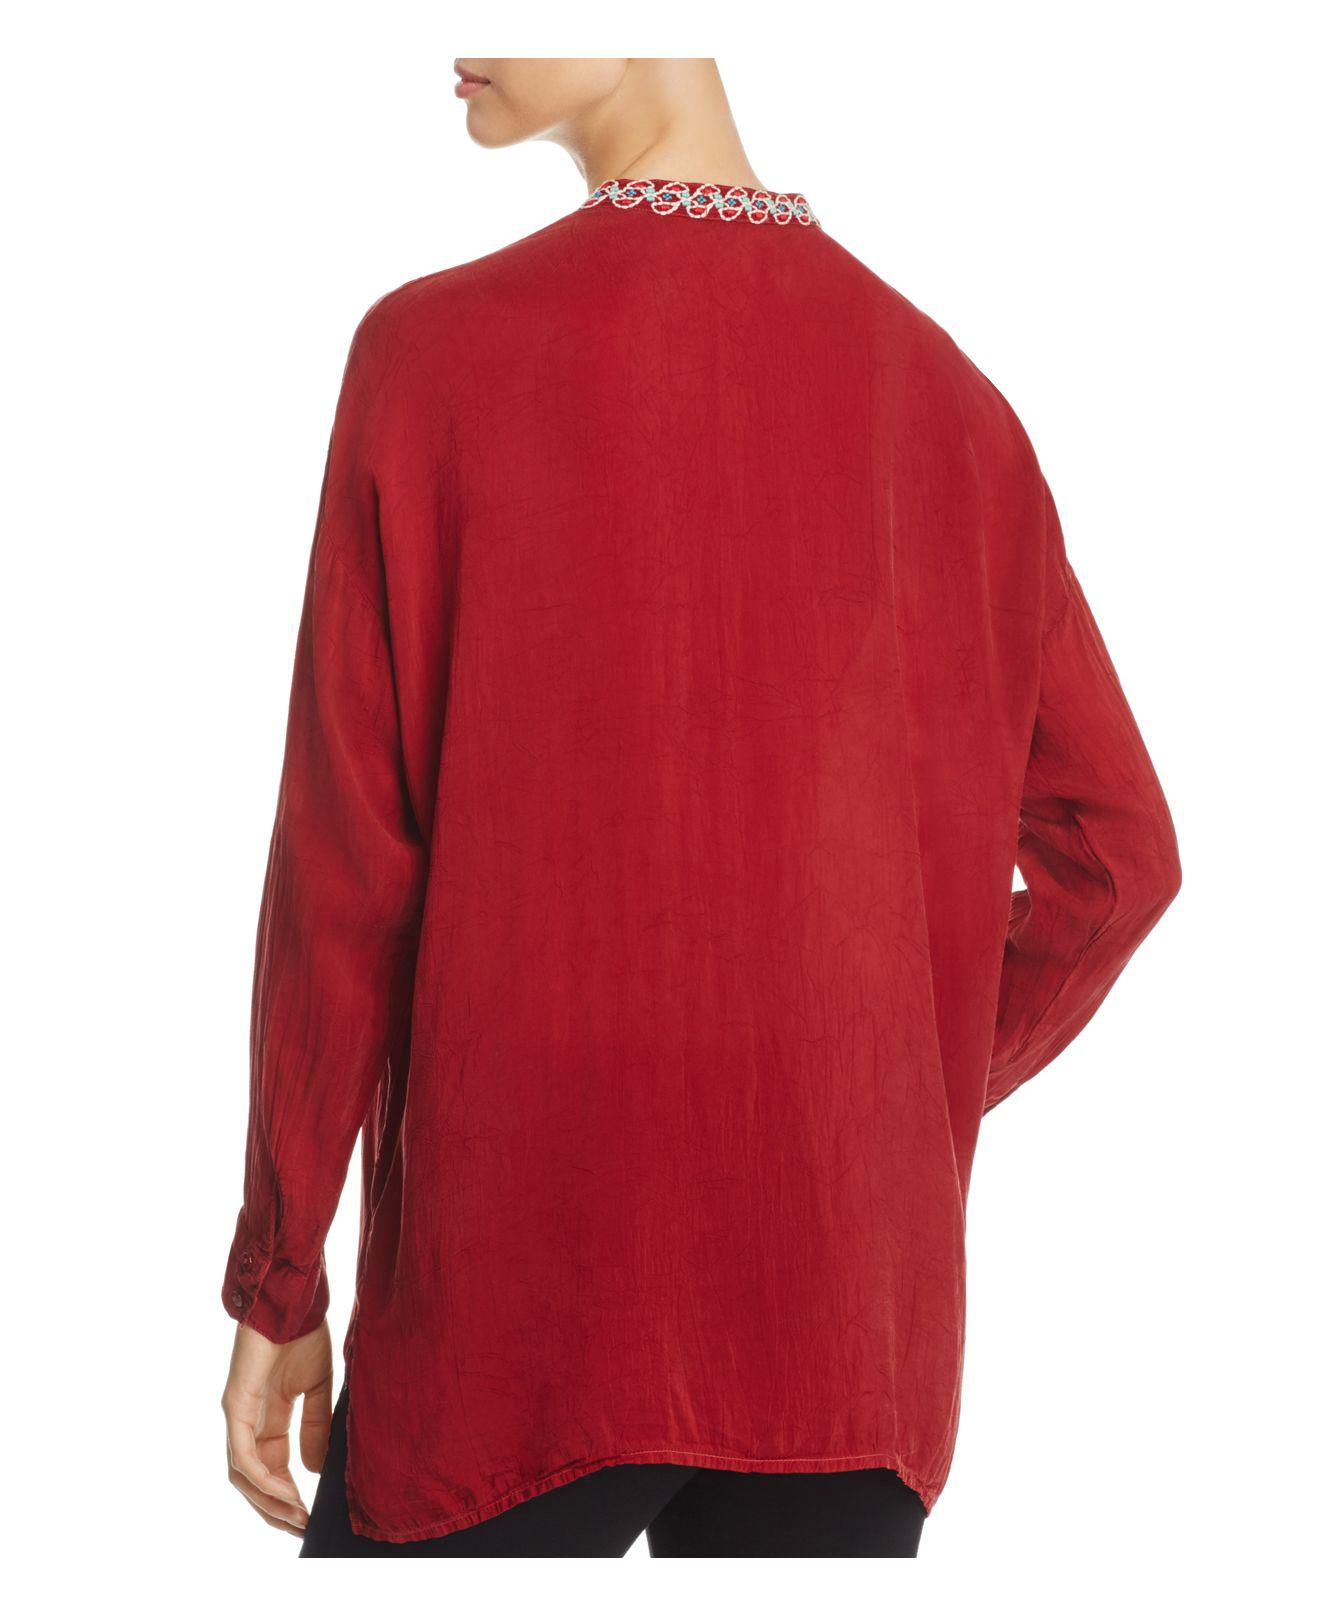 d6421486ff33f Lyst - Johnny Was Gemstone Embroidered Blouse in Red